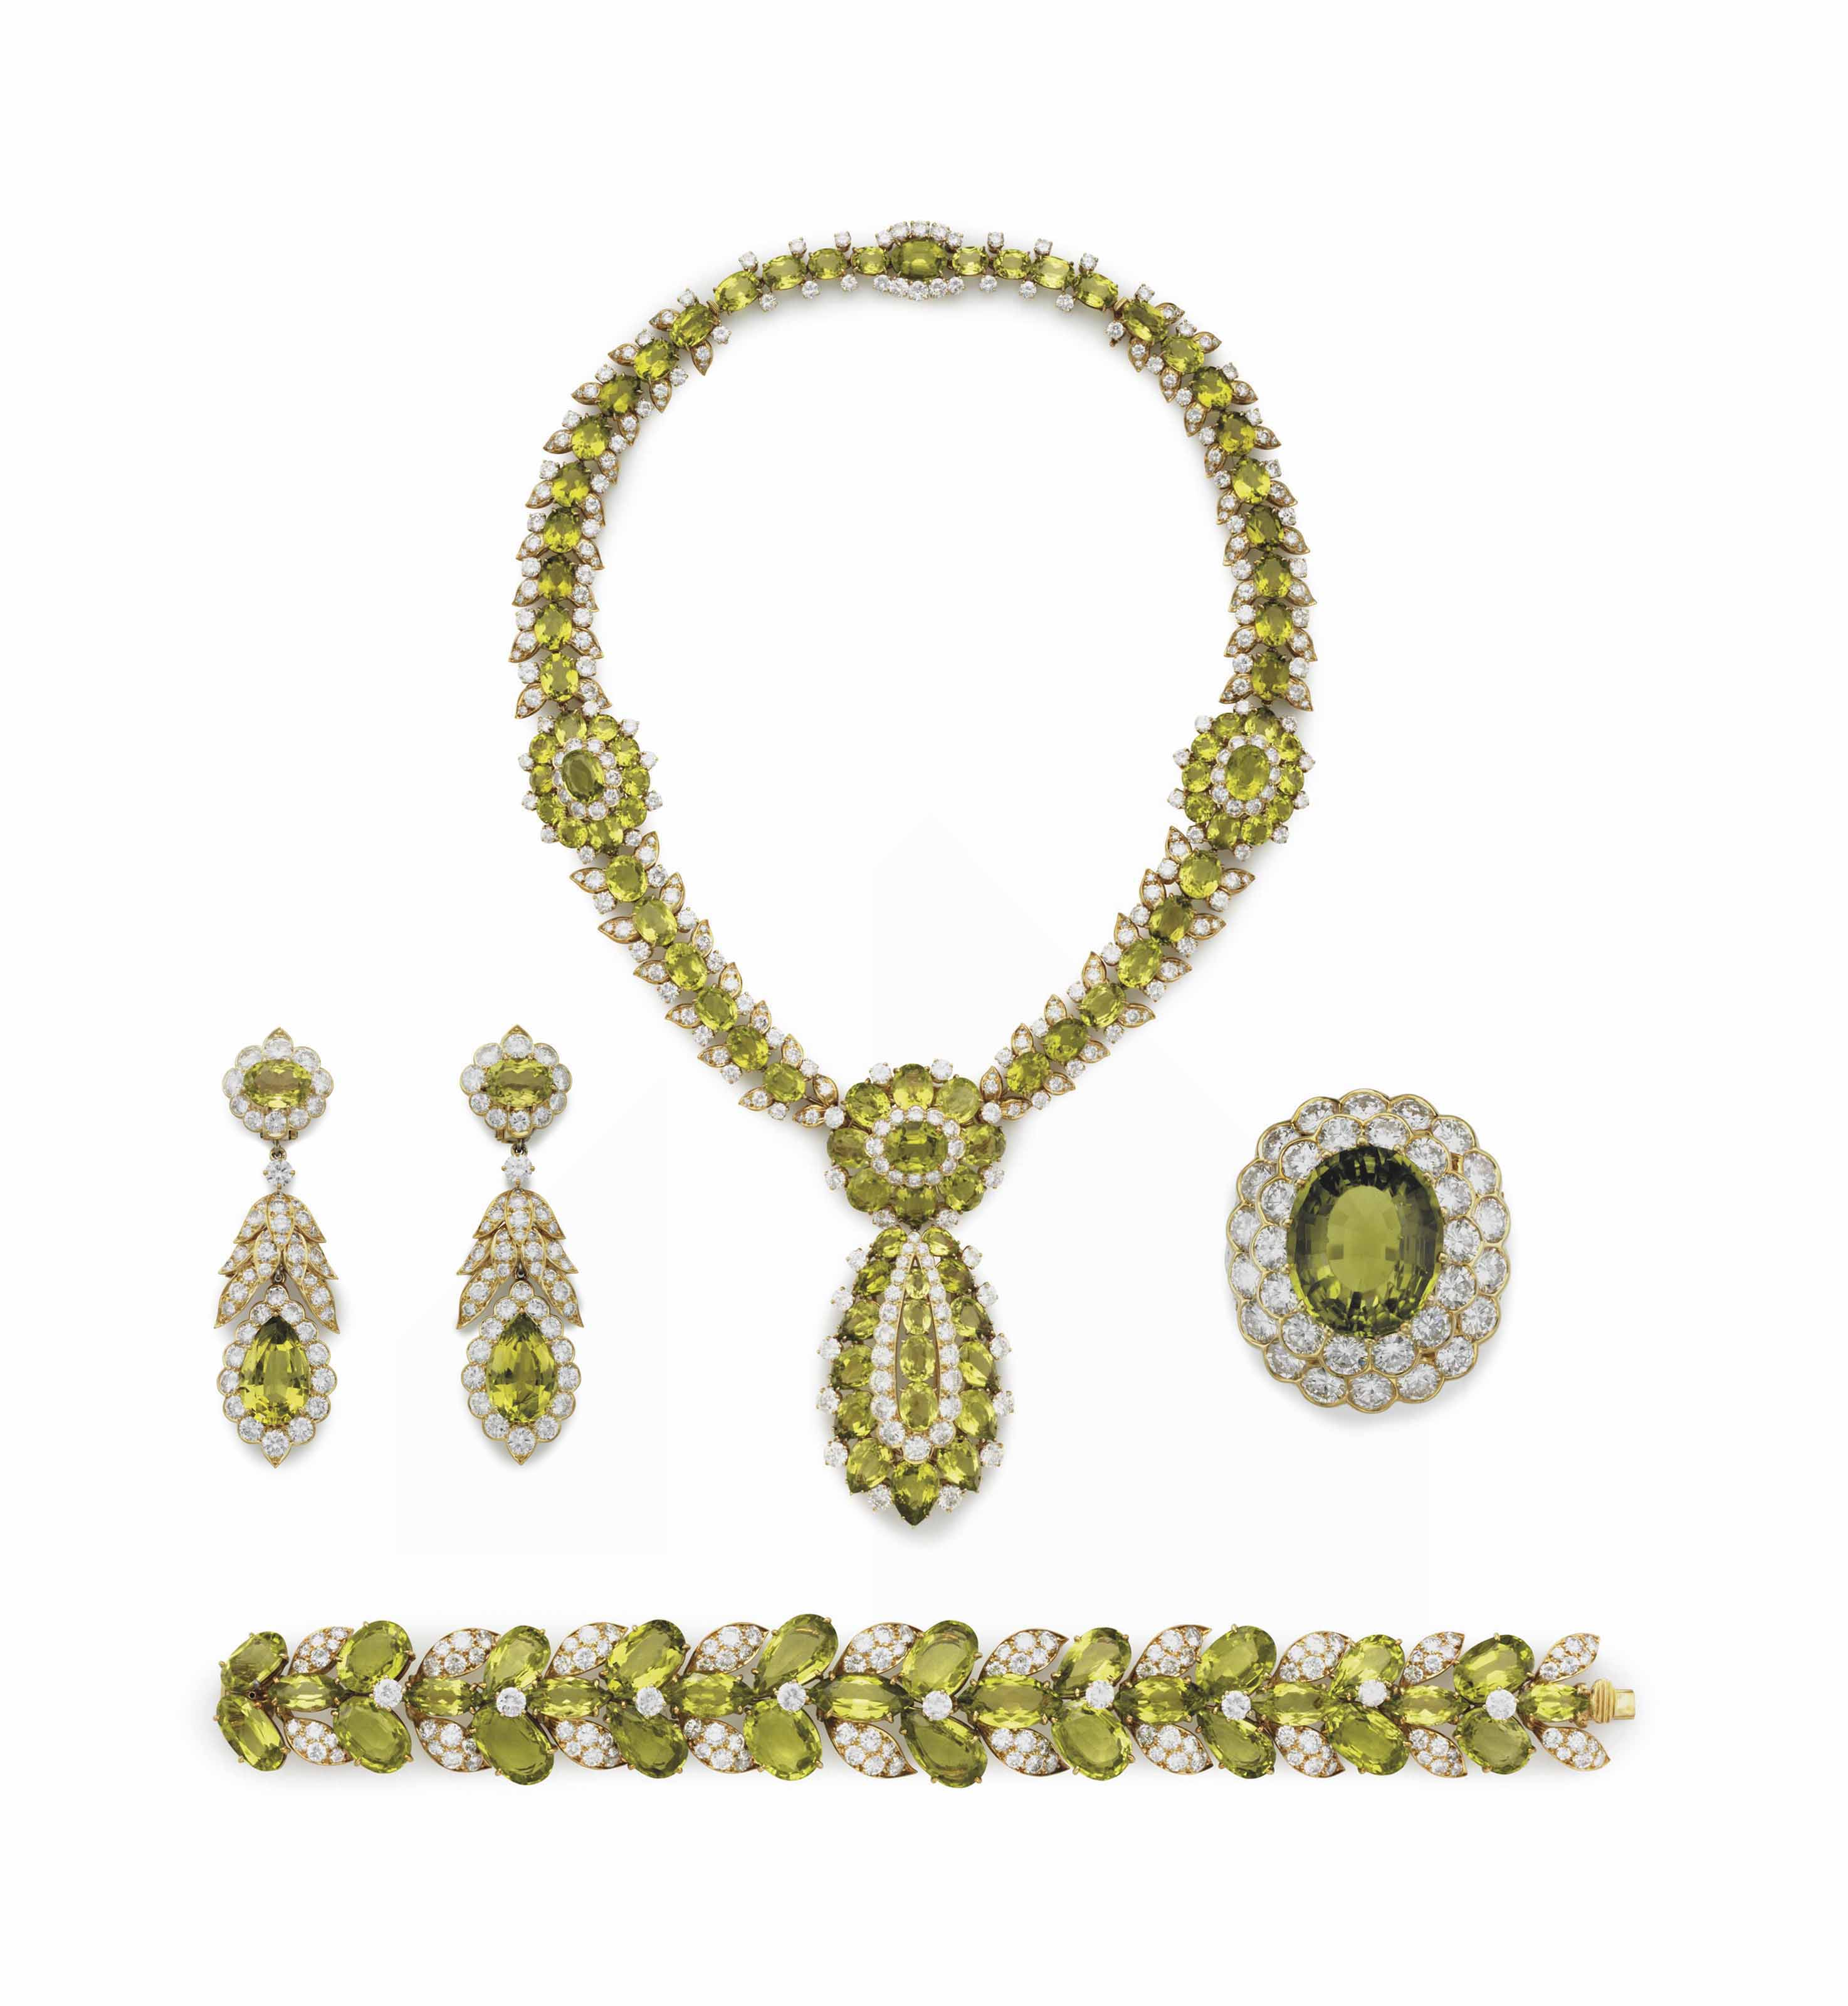 A SUITE OF PERIDOT AND DIAMOND JEWELRY, BY VAN CLEEF & ARPELS